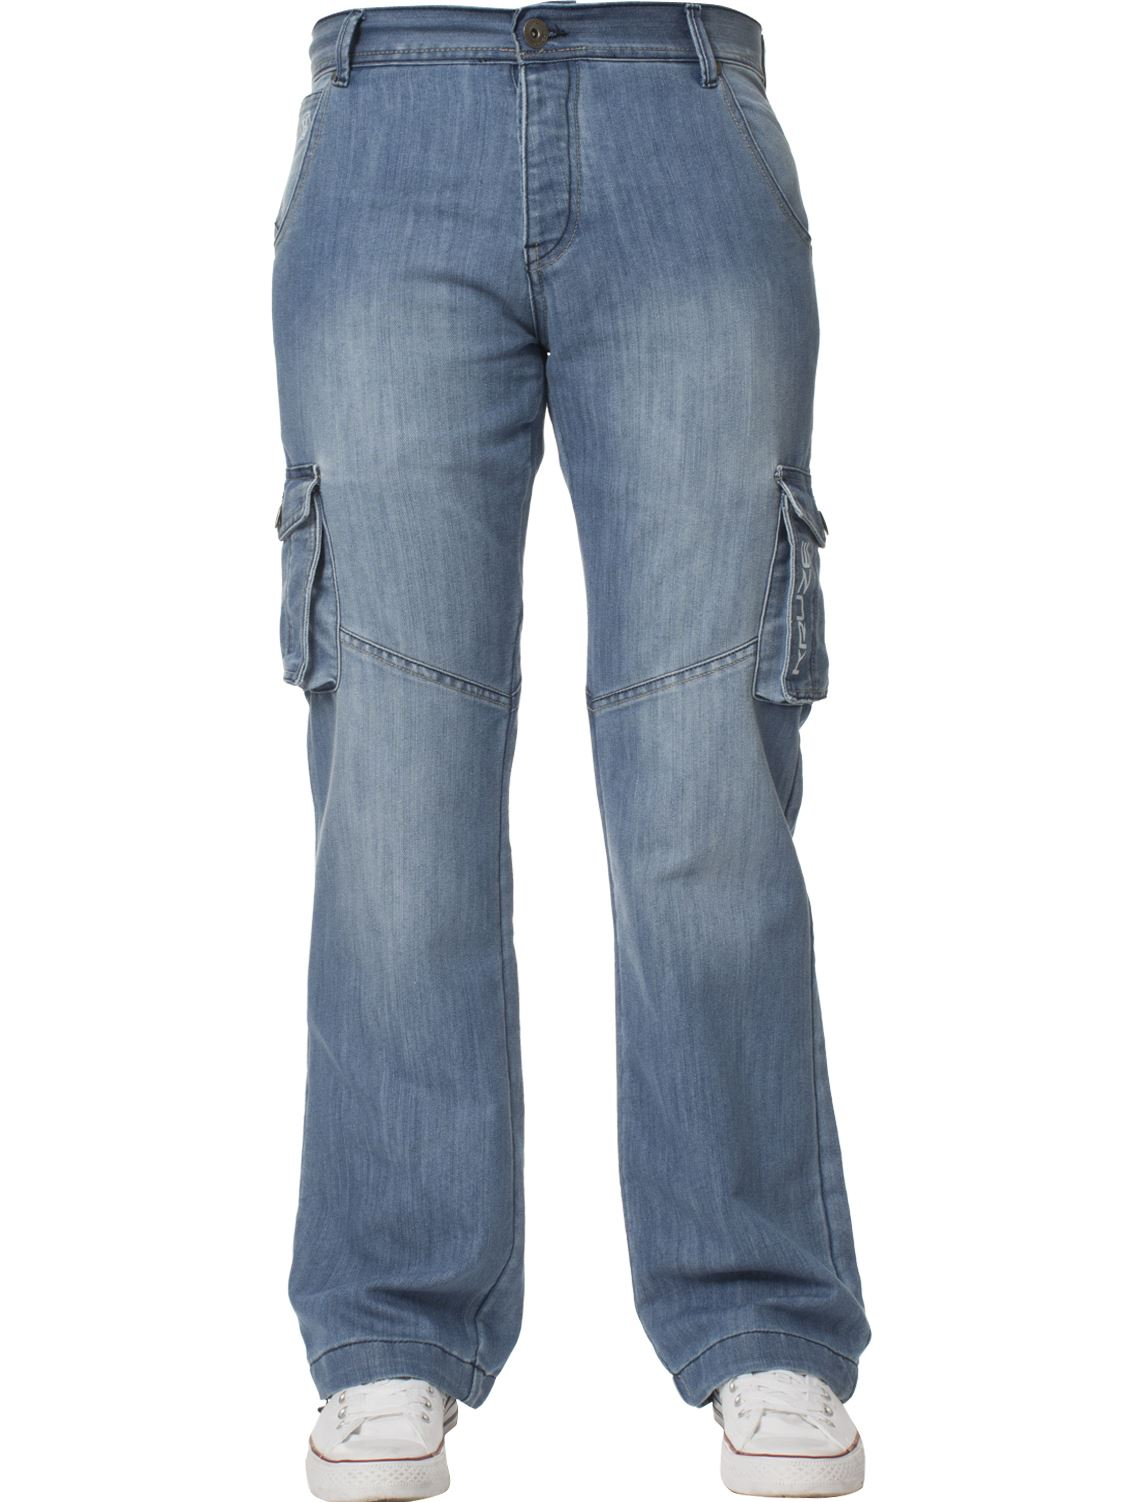 Mens-Cargo-Combat-Trousers-Jeans-Heavy-Duty-Work-Casual-Pants-Big-Tall-All-Sizes thumbnail 21